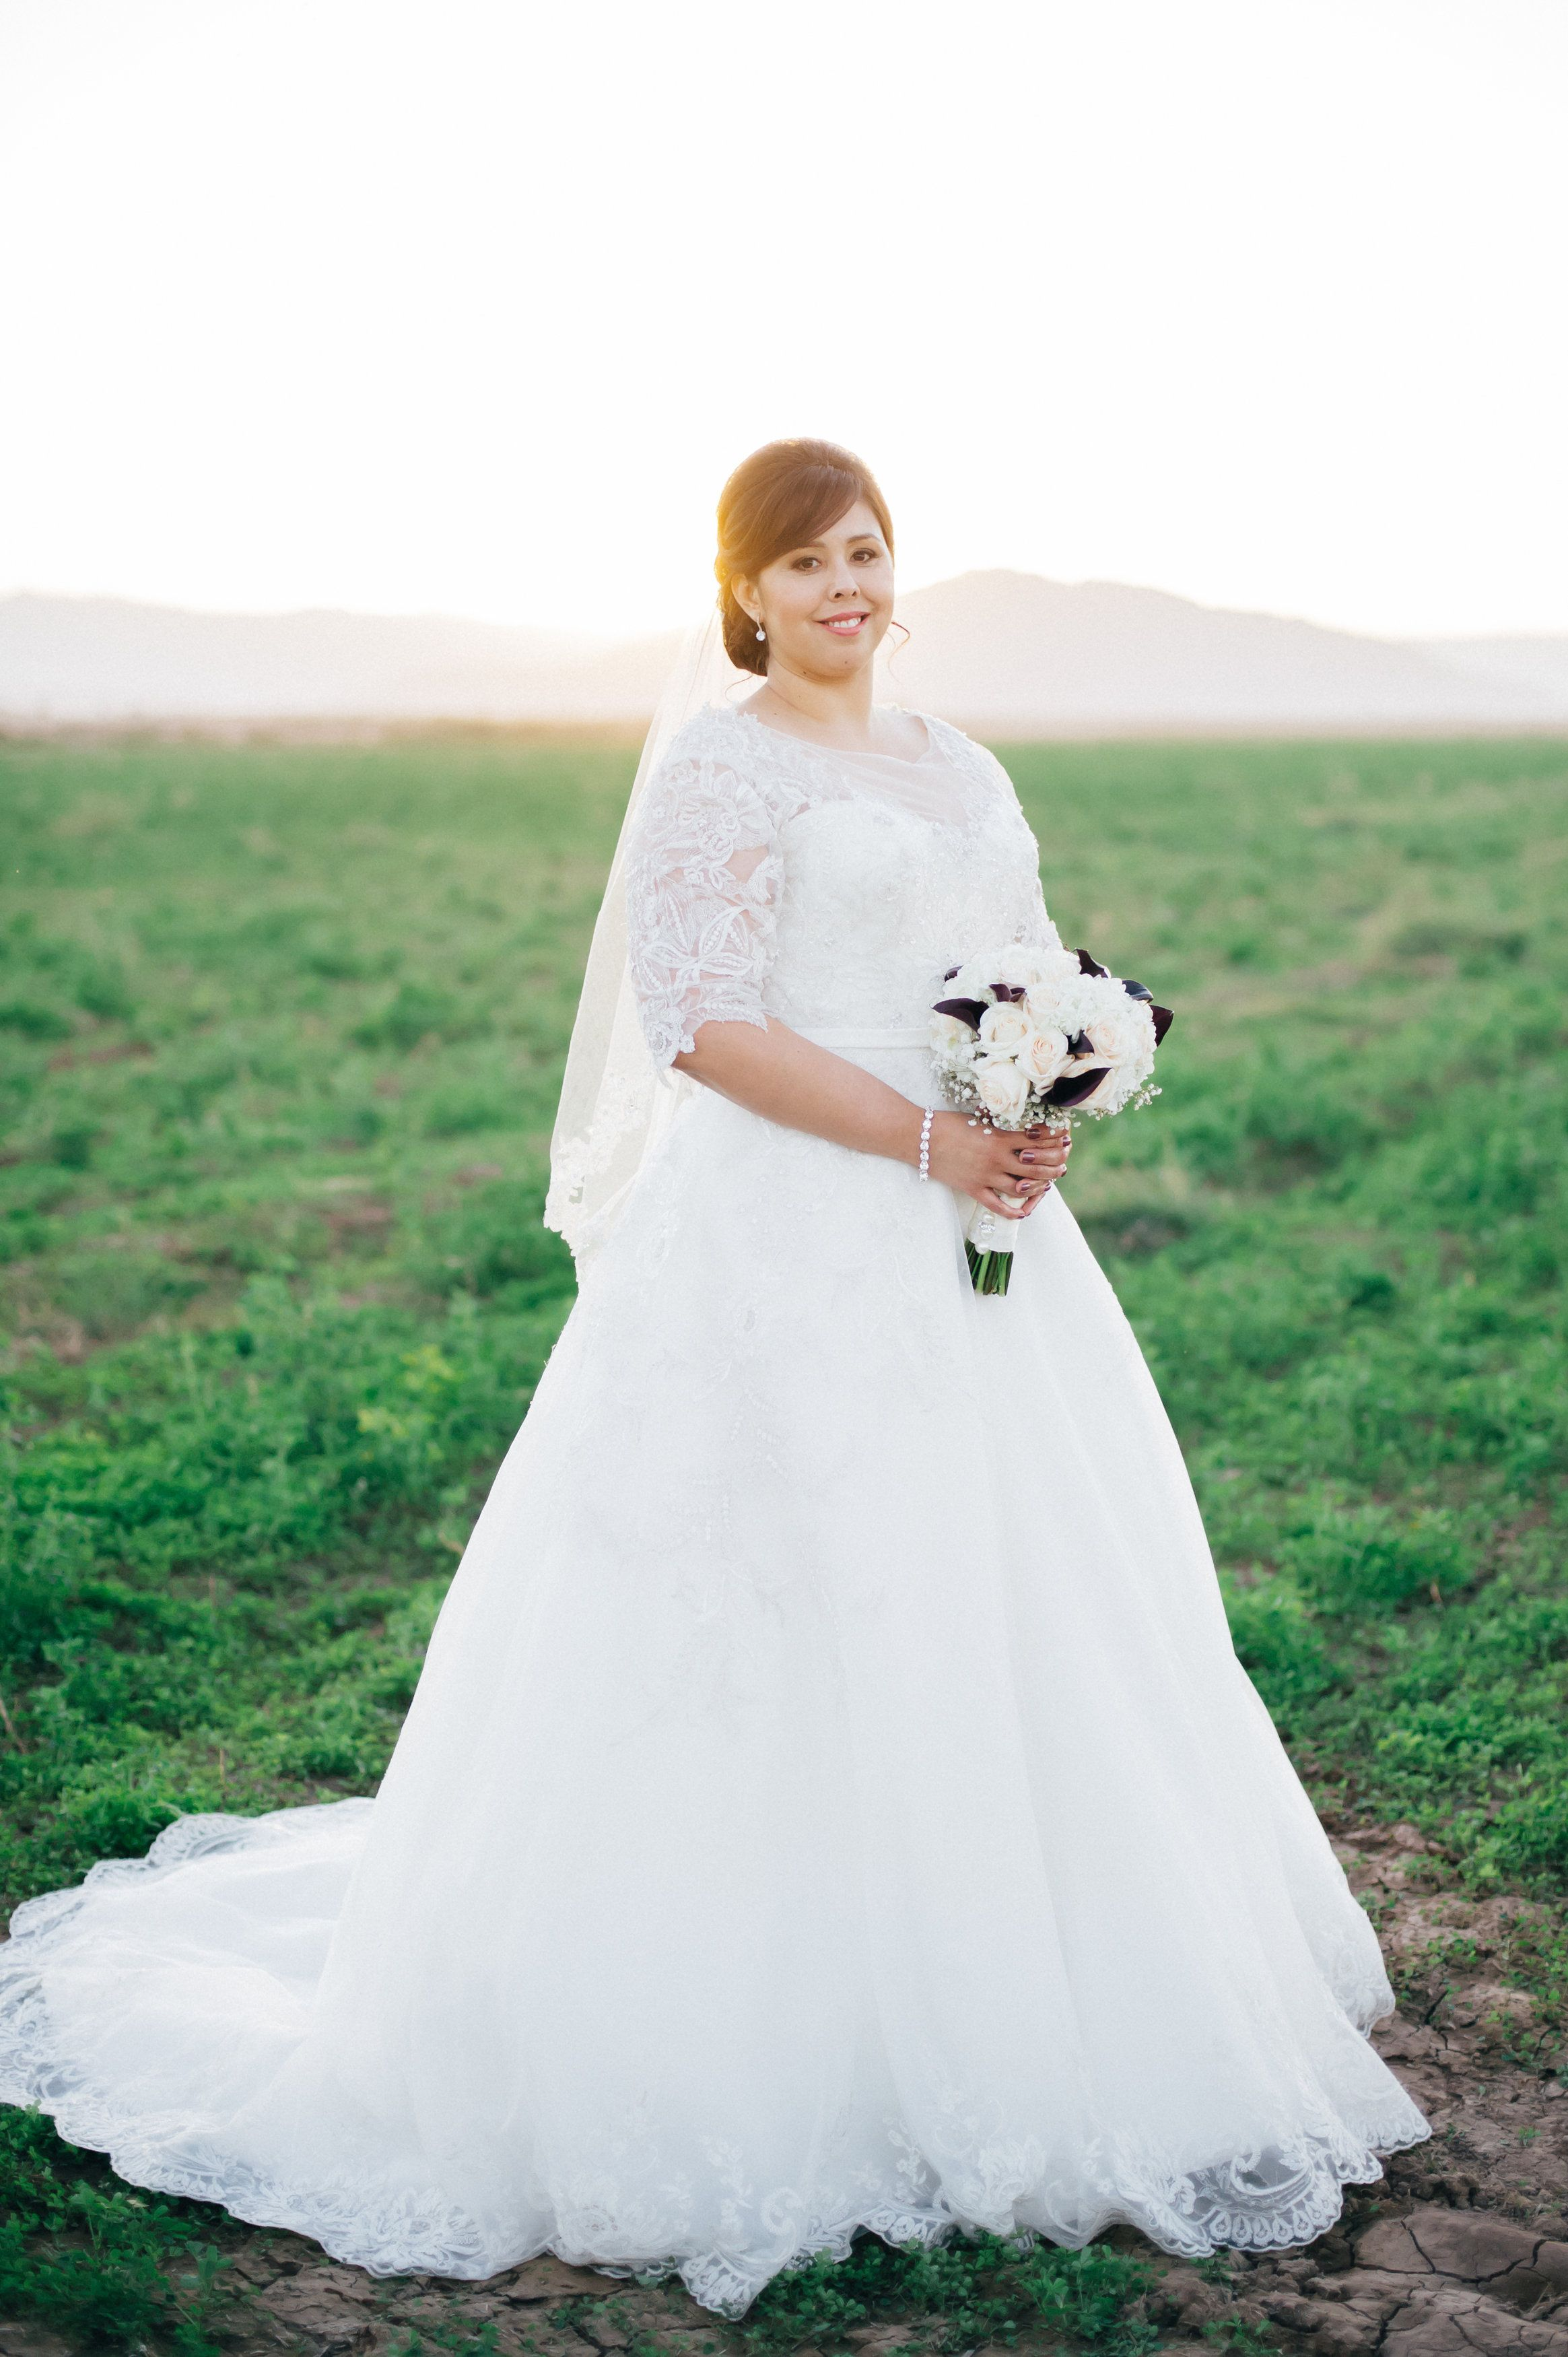 Affordable Custom Plus Size Wedding Gowns From The Usa Plus Size Wedding Gowns Designer Wedding Dresses Plus Size Wedding